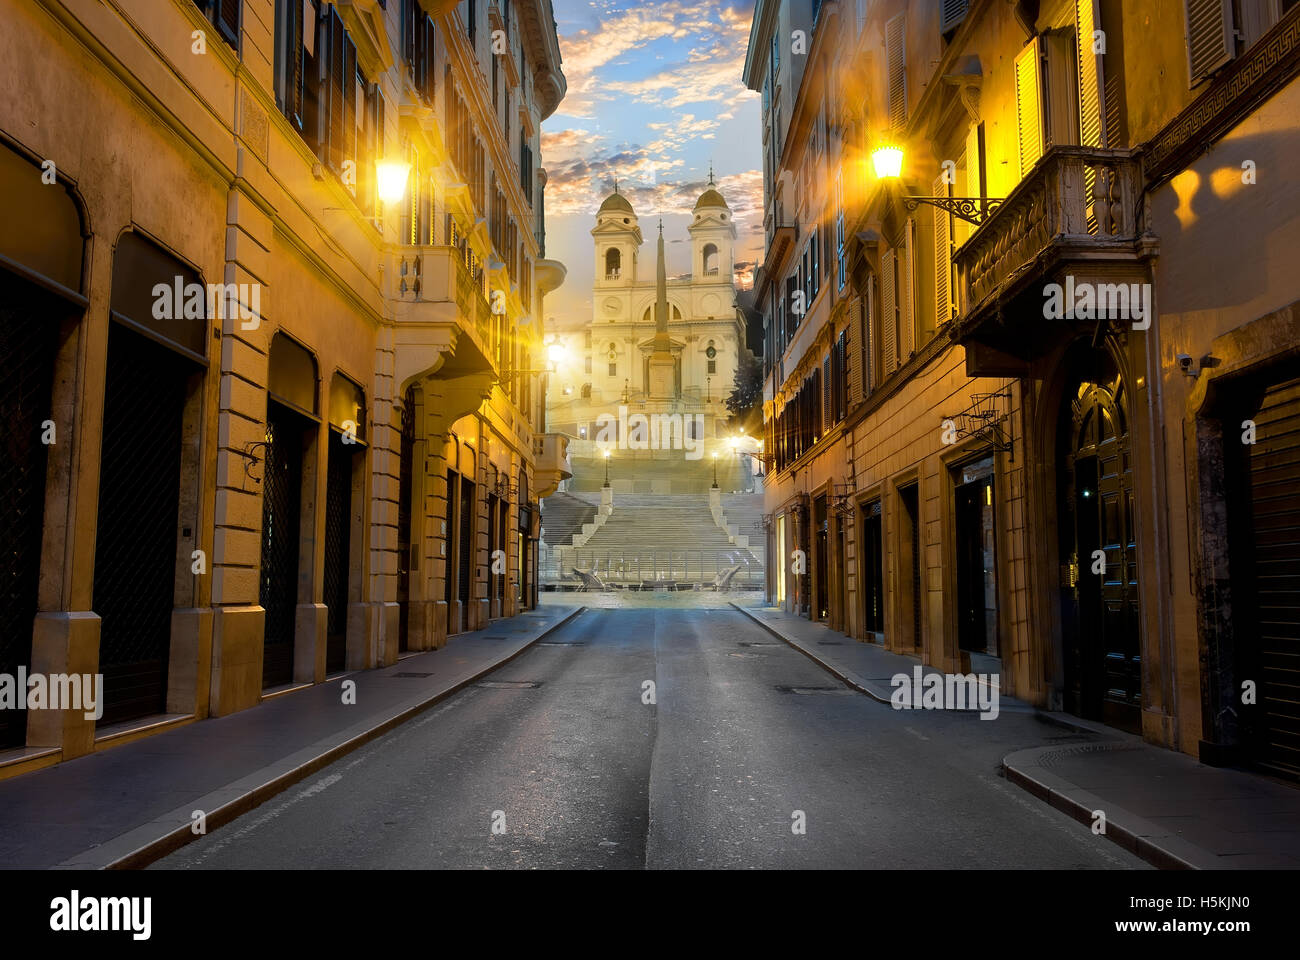 Street with road to Spanish Stairs in Rome, Italy - Stock Image